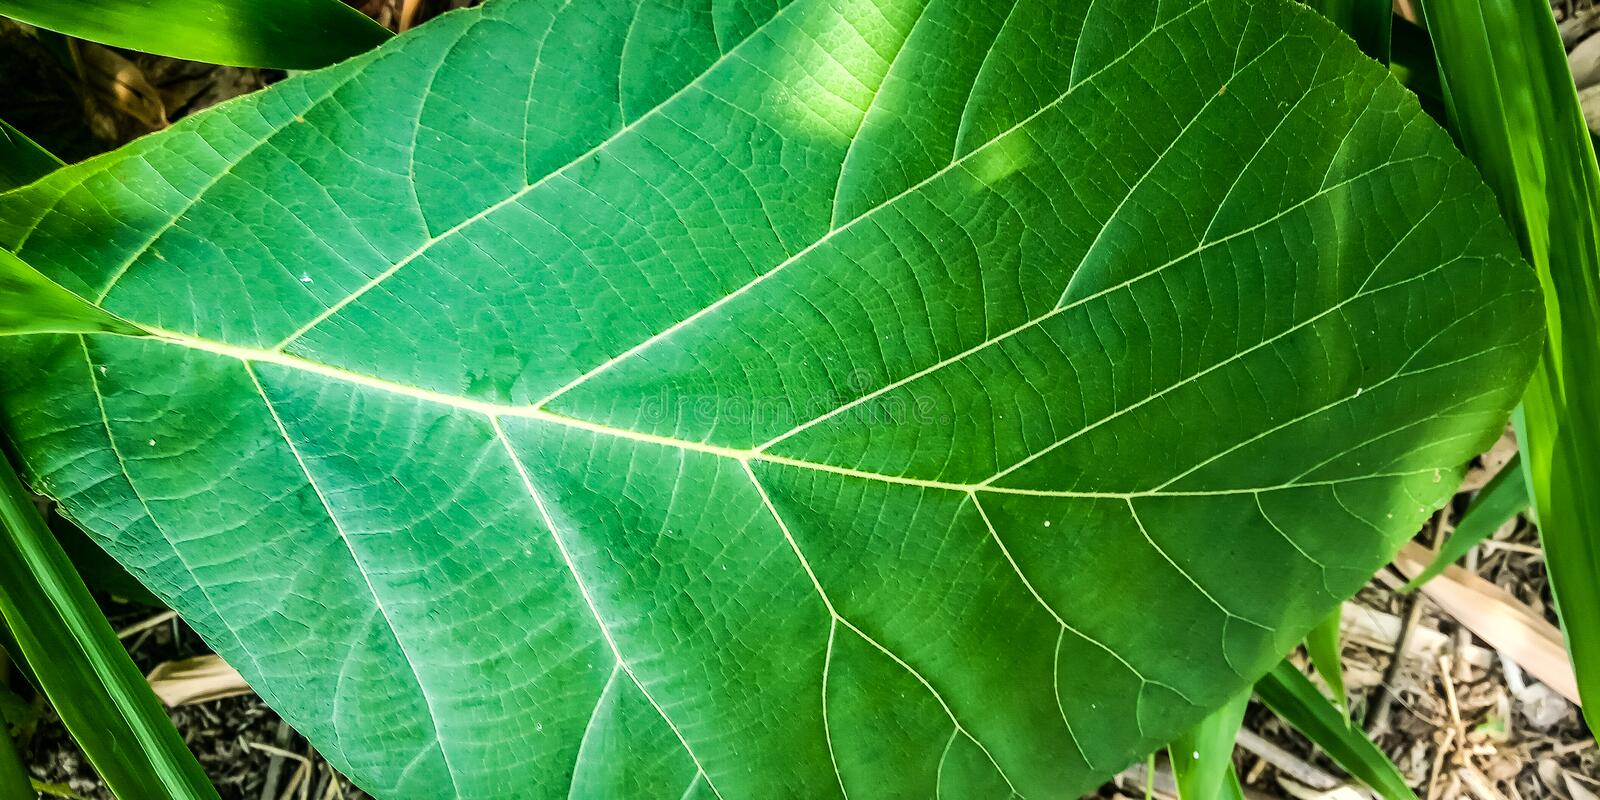 Teak leaves in the forest royalty free stock photo